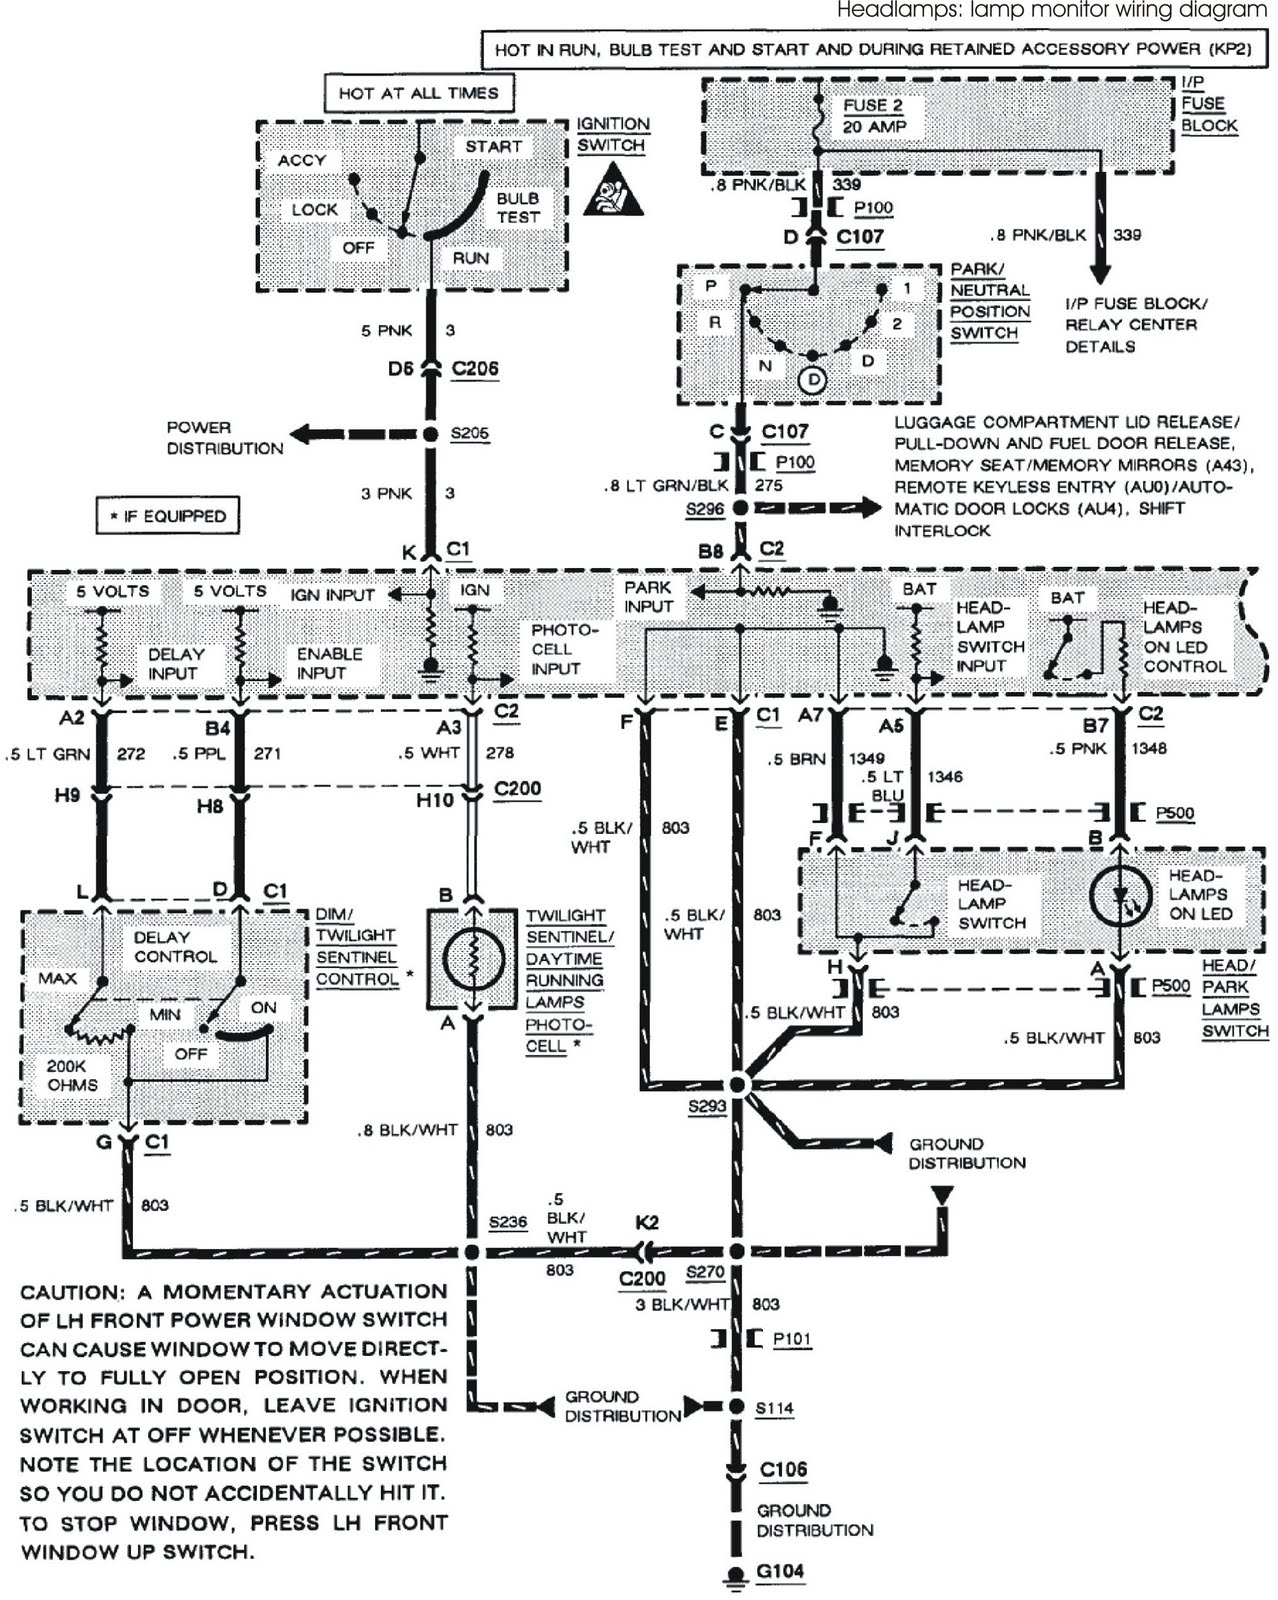 Fantastic 2007 Hummer H3 Wiring Schematic Image - Wiring Diagram ...